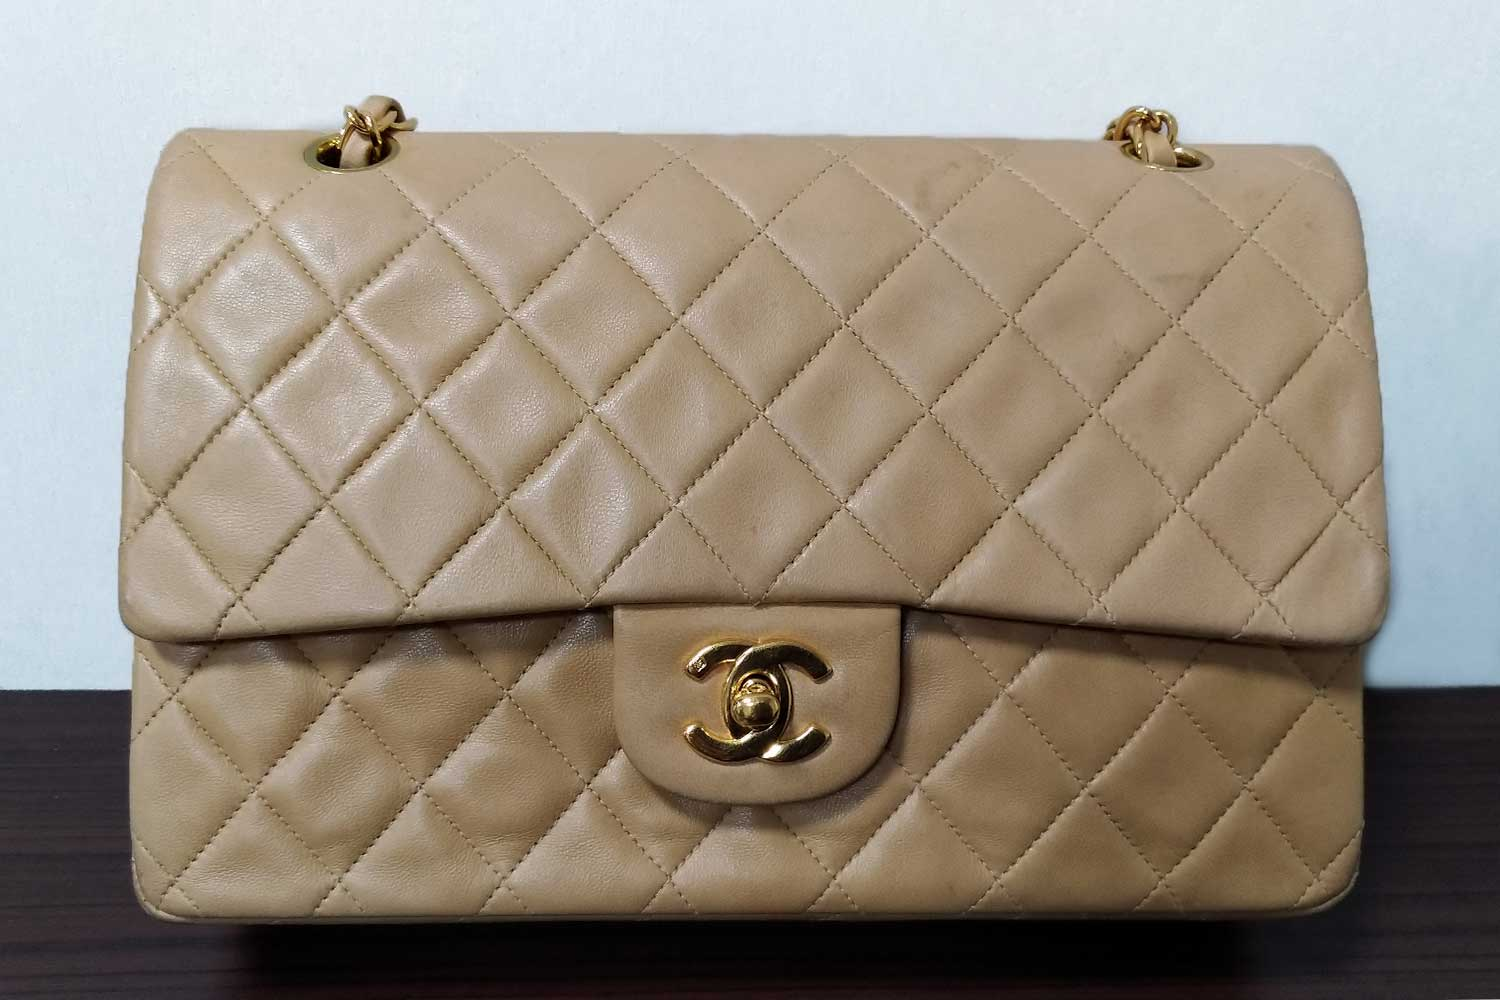 https://leather-pro.com/wp-content/uploads/2018/05/news_chanel_before_1500.jpg